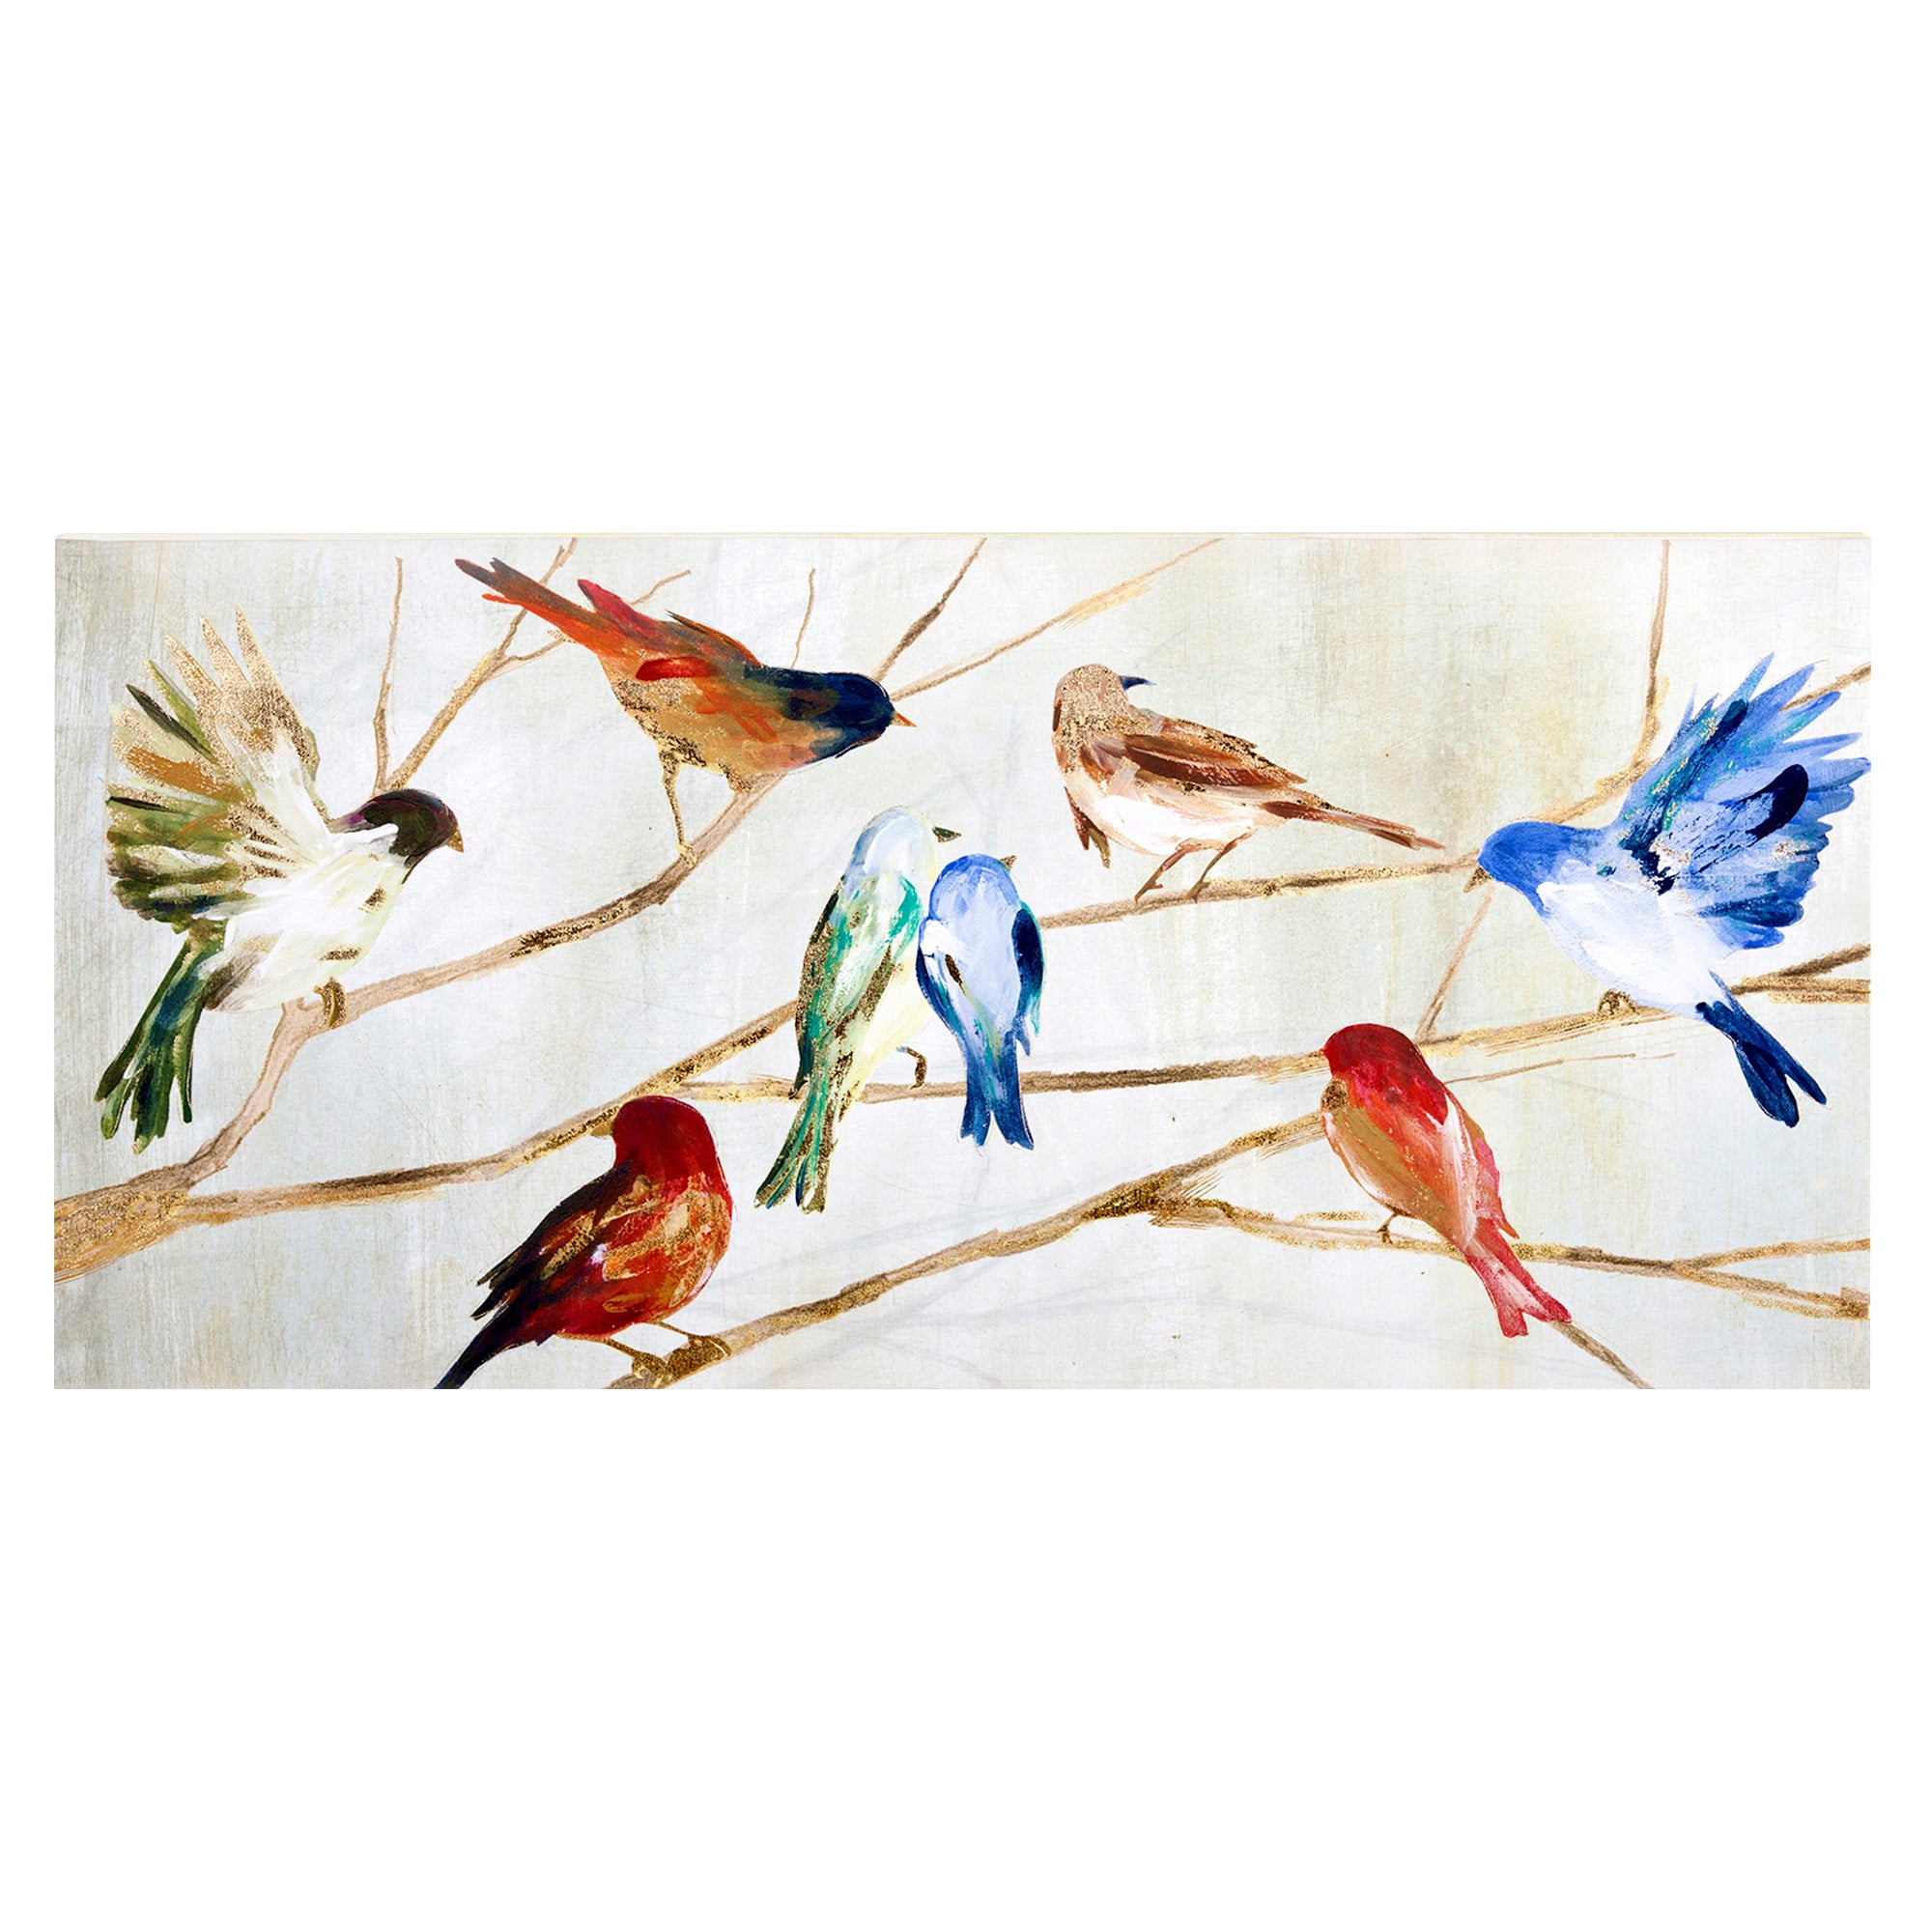 Birds on a Branch Printed Canvas